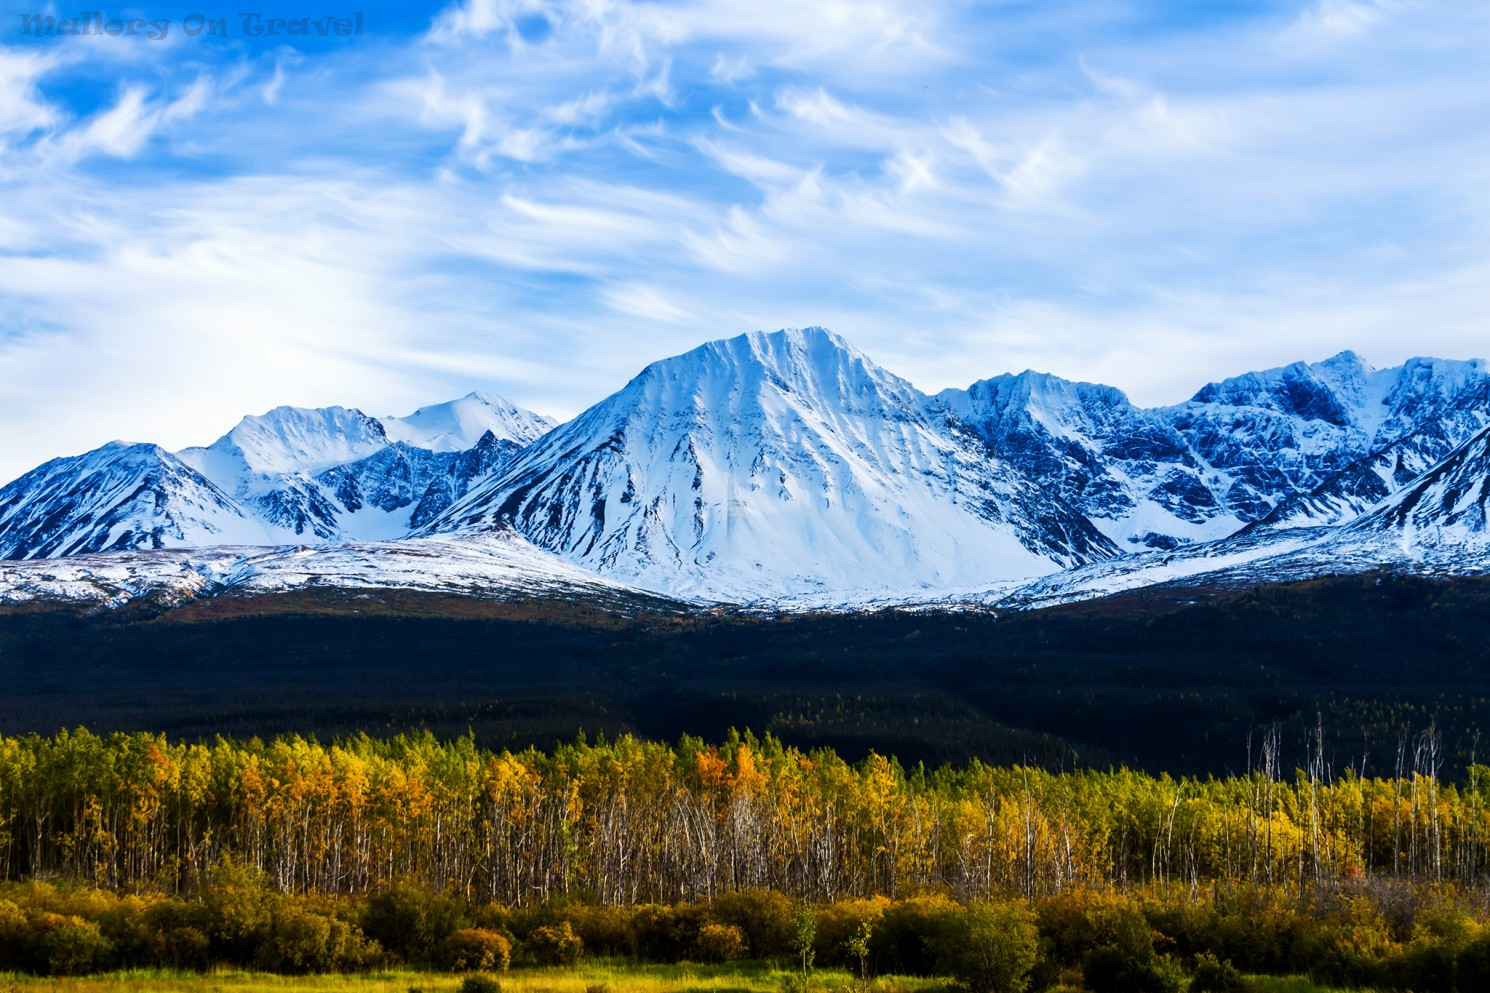 A saw tooth ridge and fall colours along the Alaska Highway between Alaska and Haines Junction in The Yukon, Canada on Mallory on Travel adventure travel, photography, travel Iain_Mallory_Yukon1412707